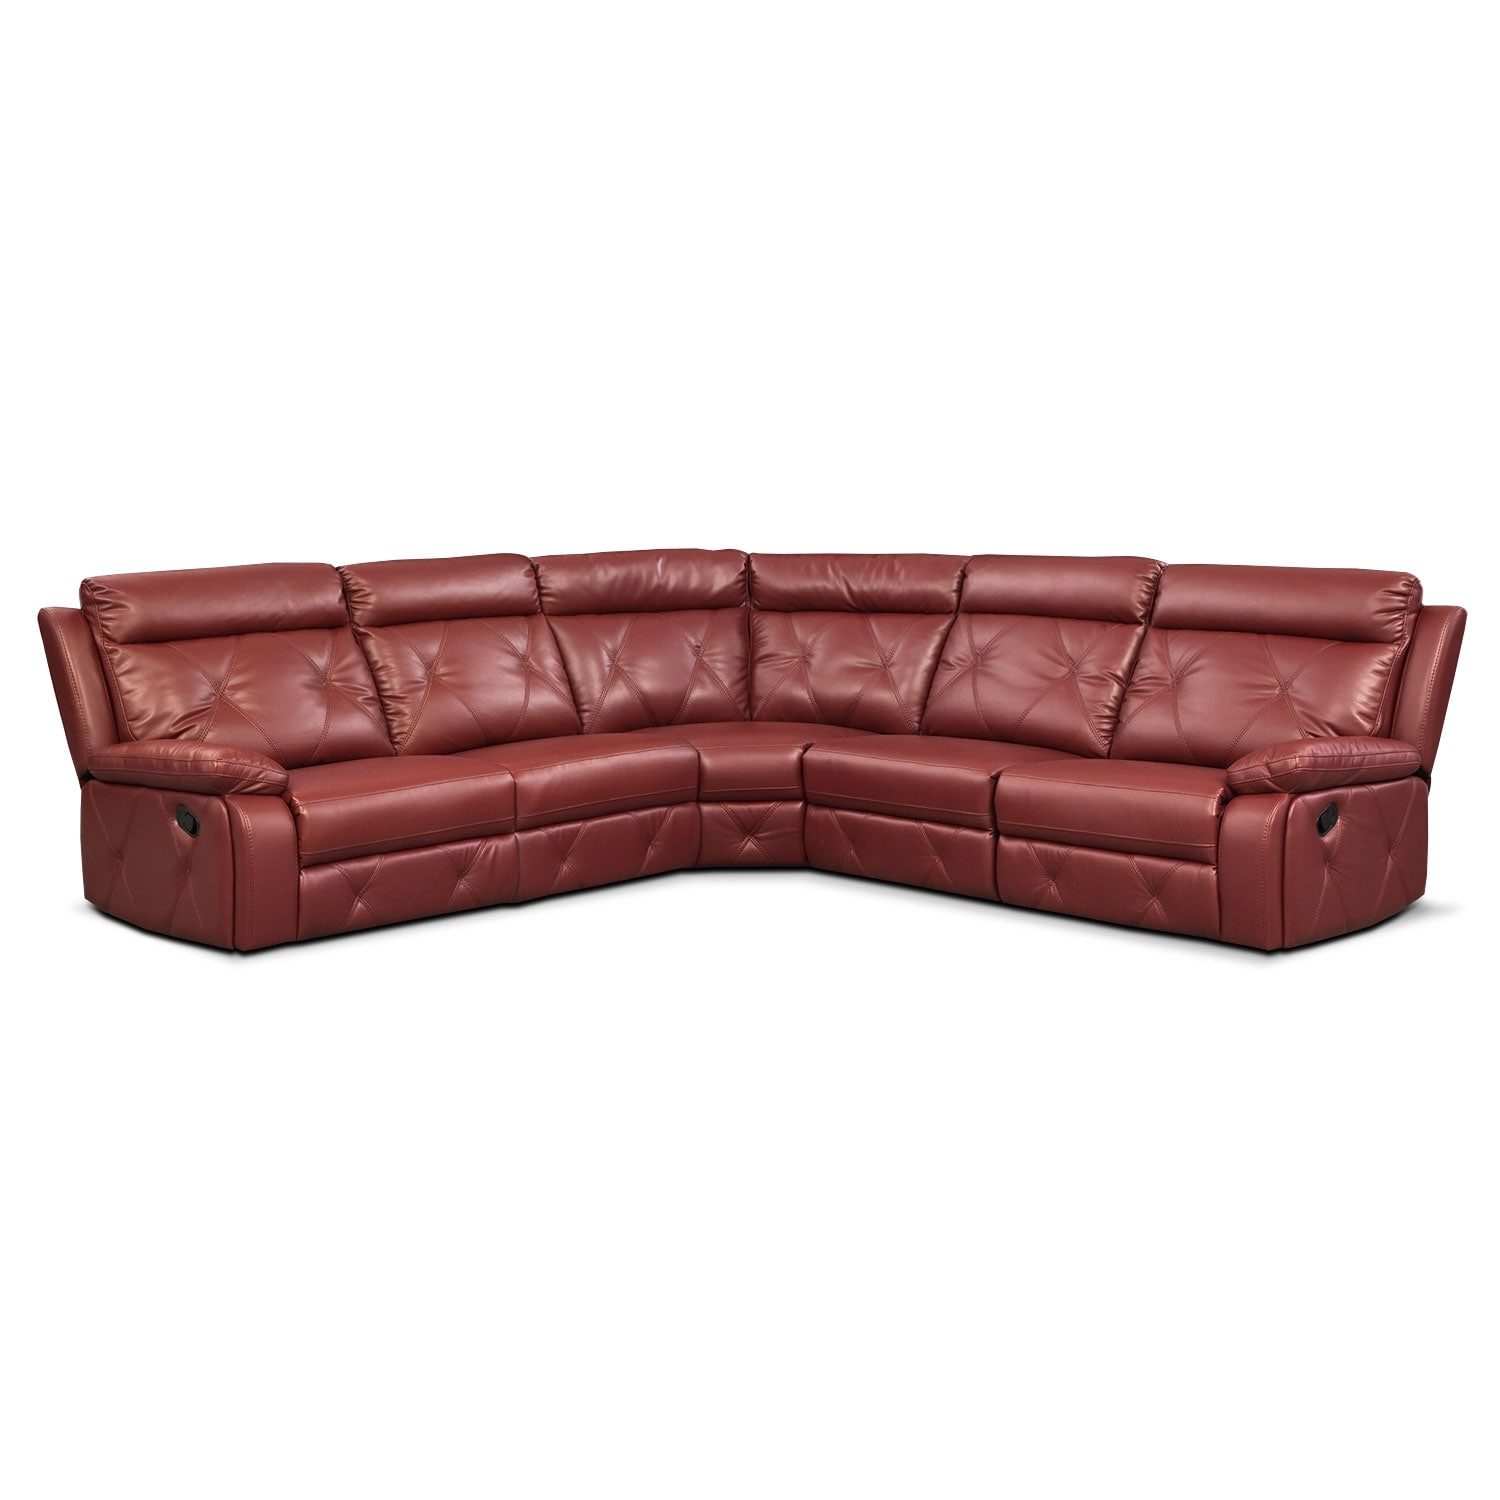 Living Room Furniture - Dante Red 5 Pc. Reclining Sectional w/ 3 Reclining Seats